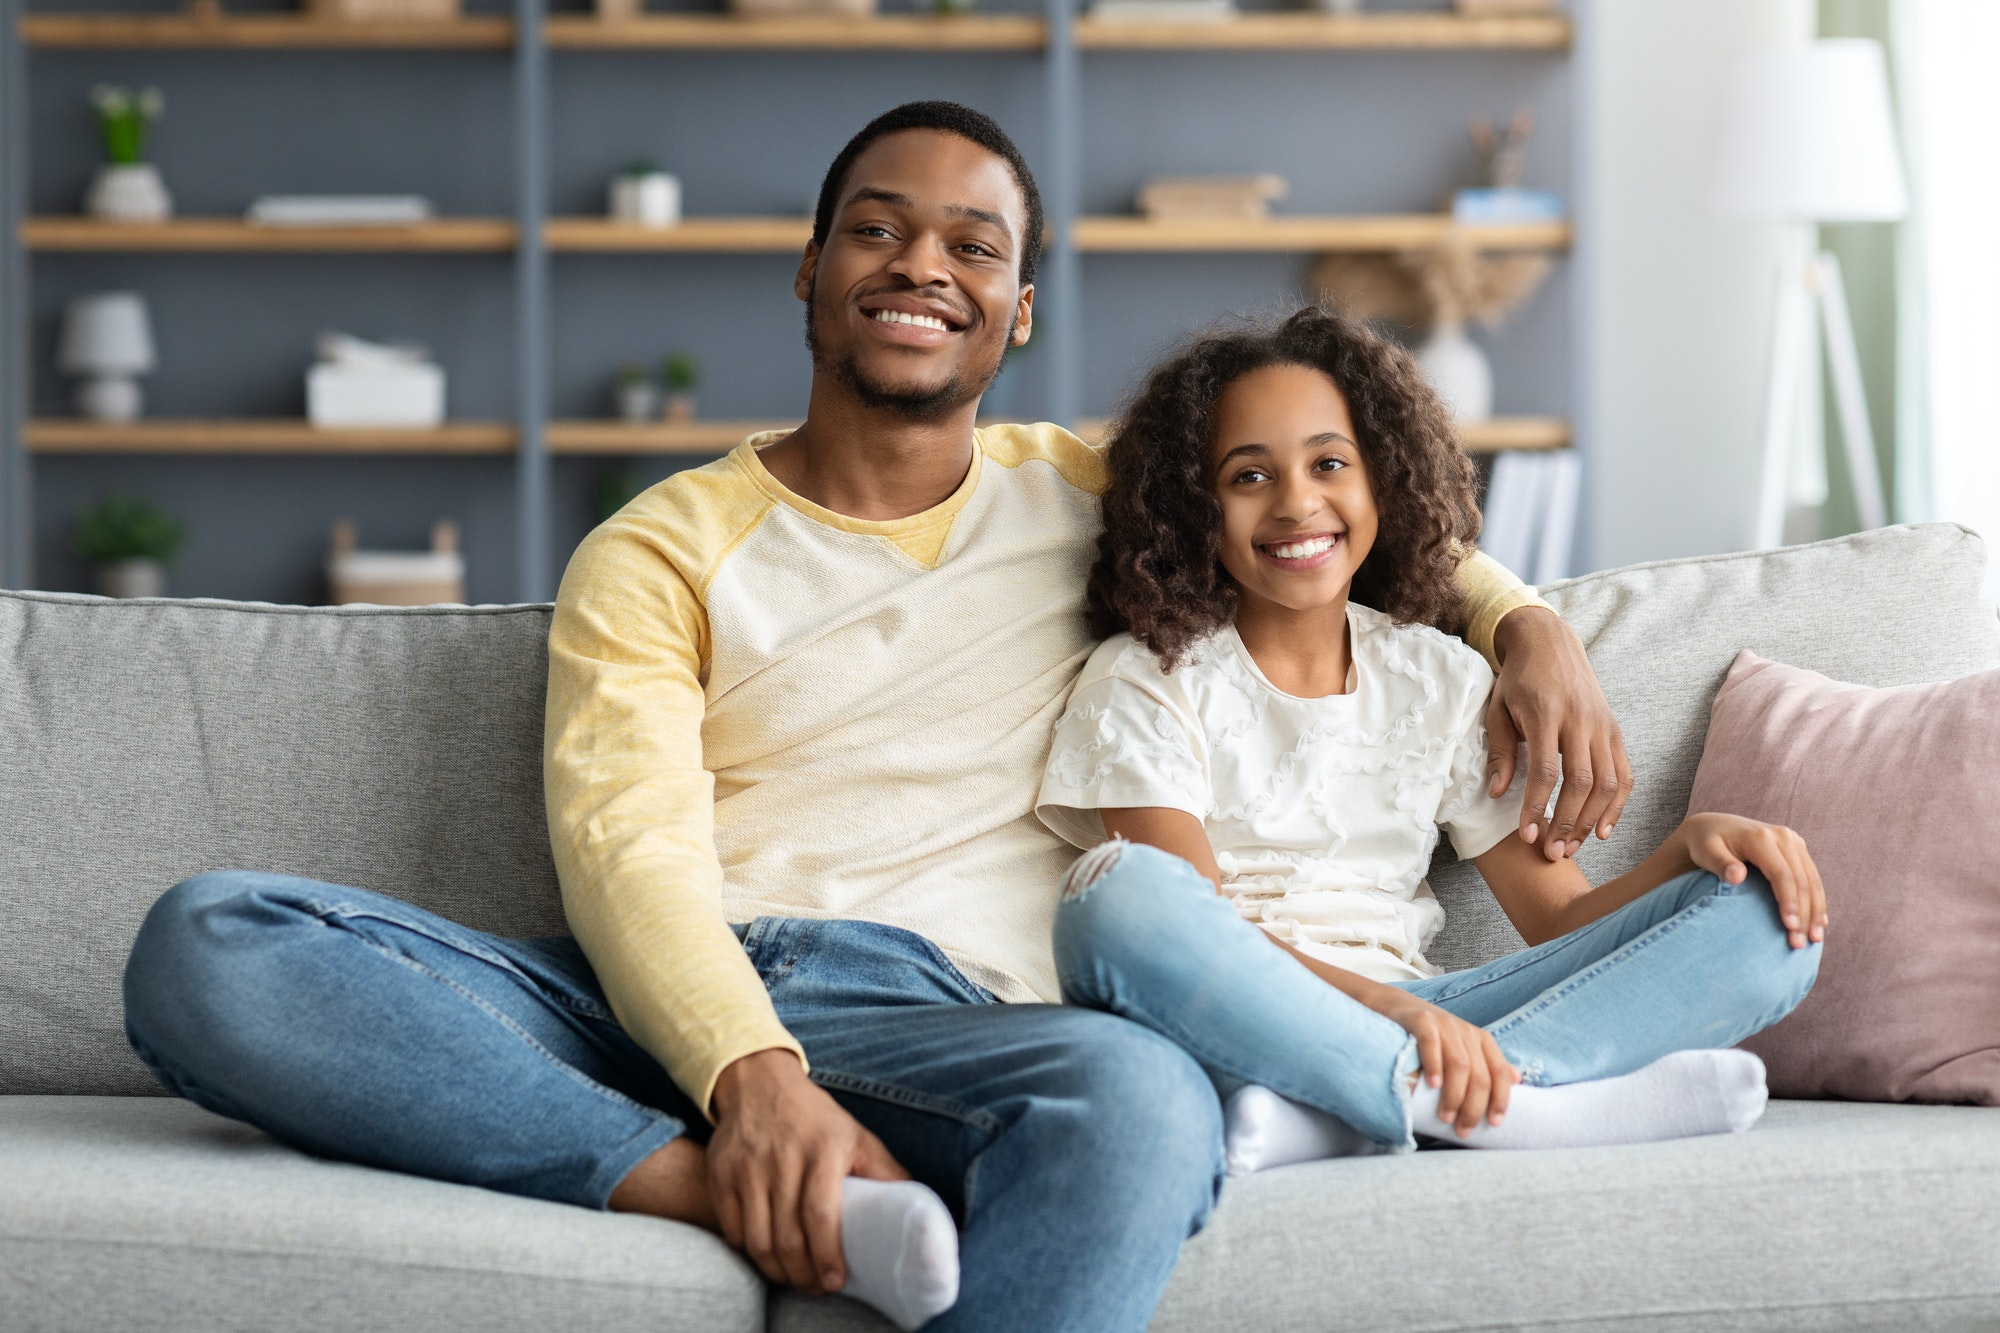 Happy african american family kid and dad spending time together